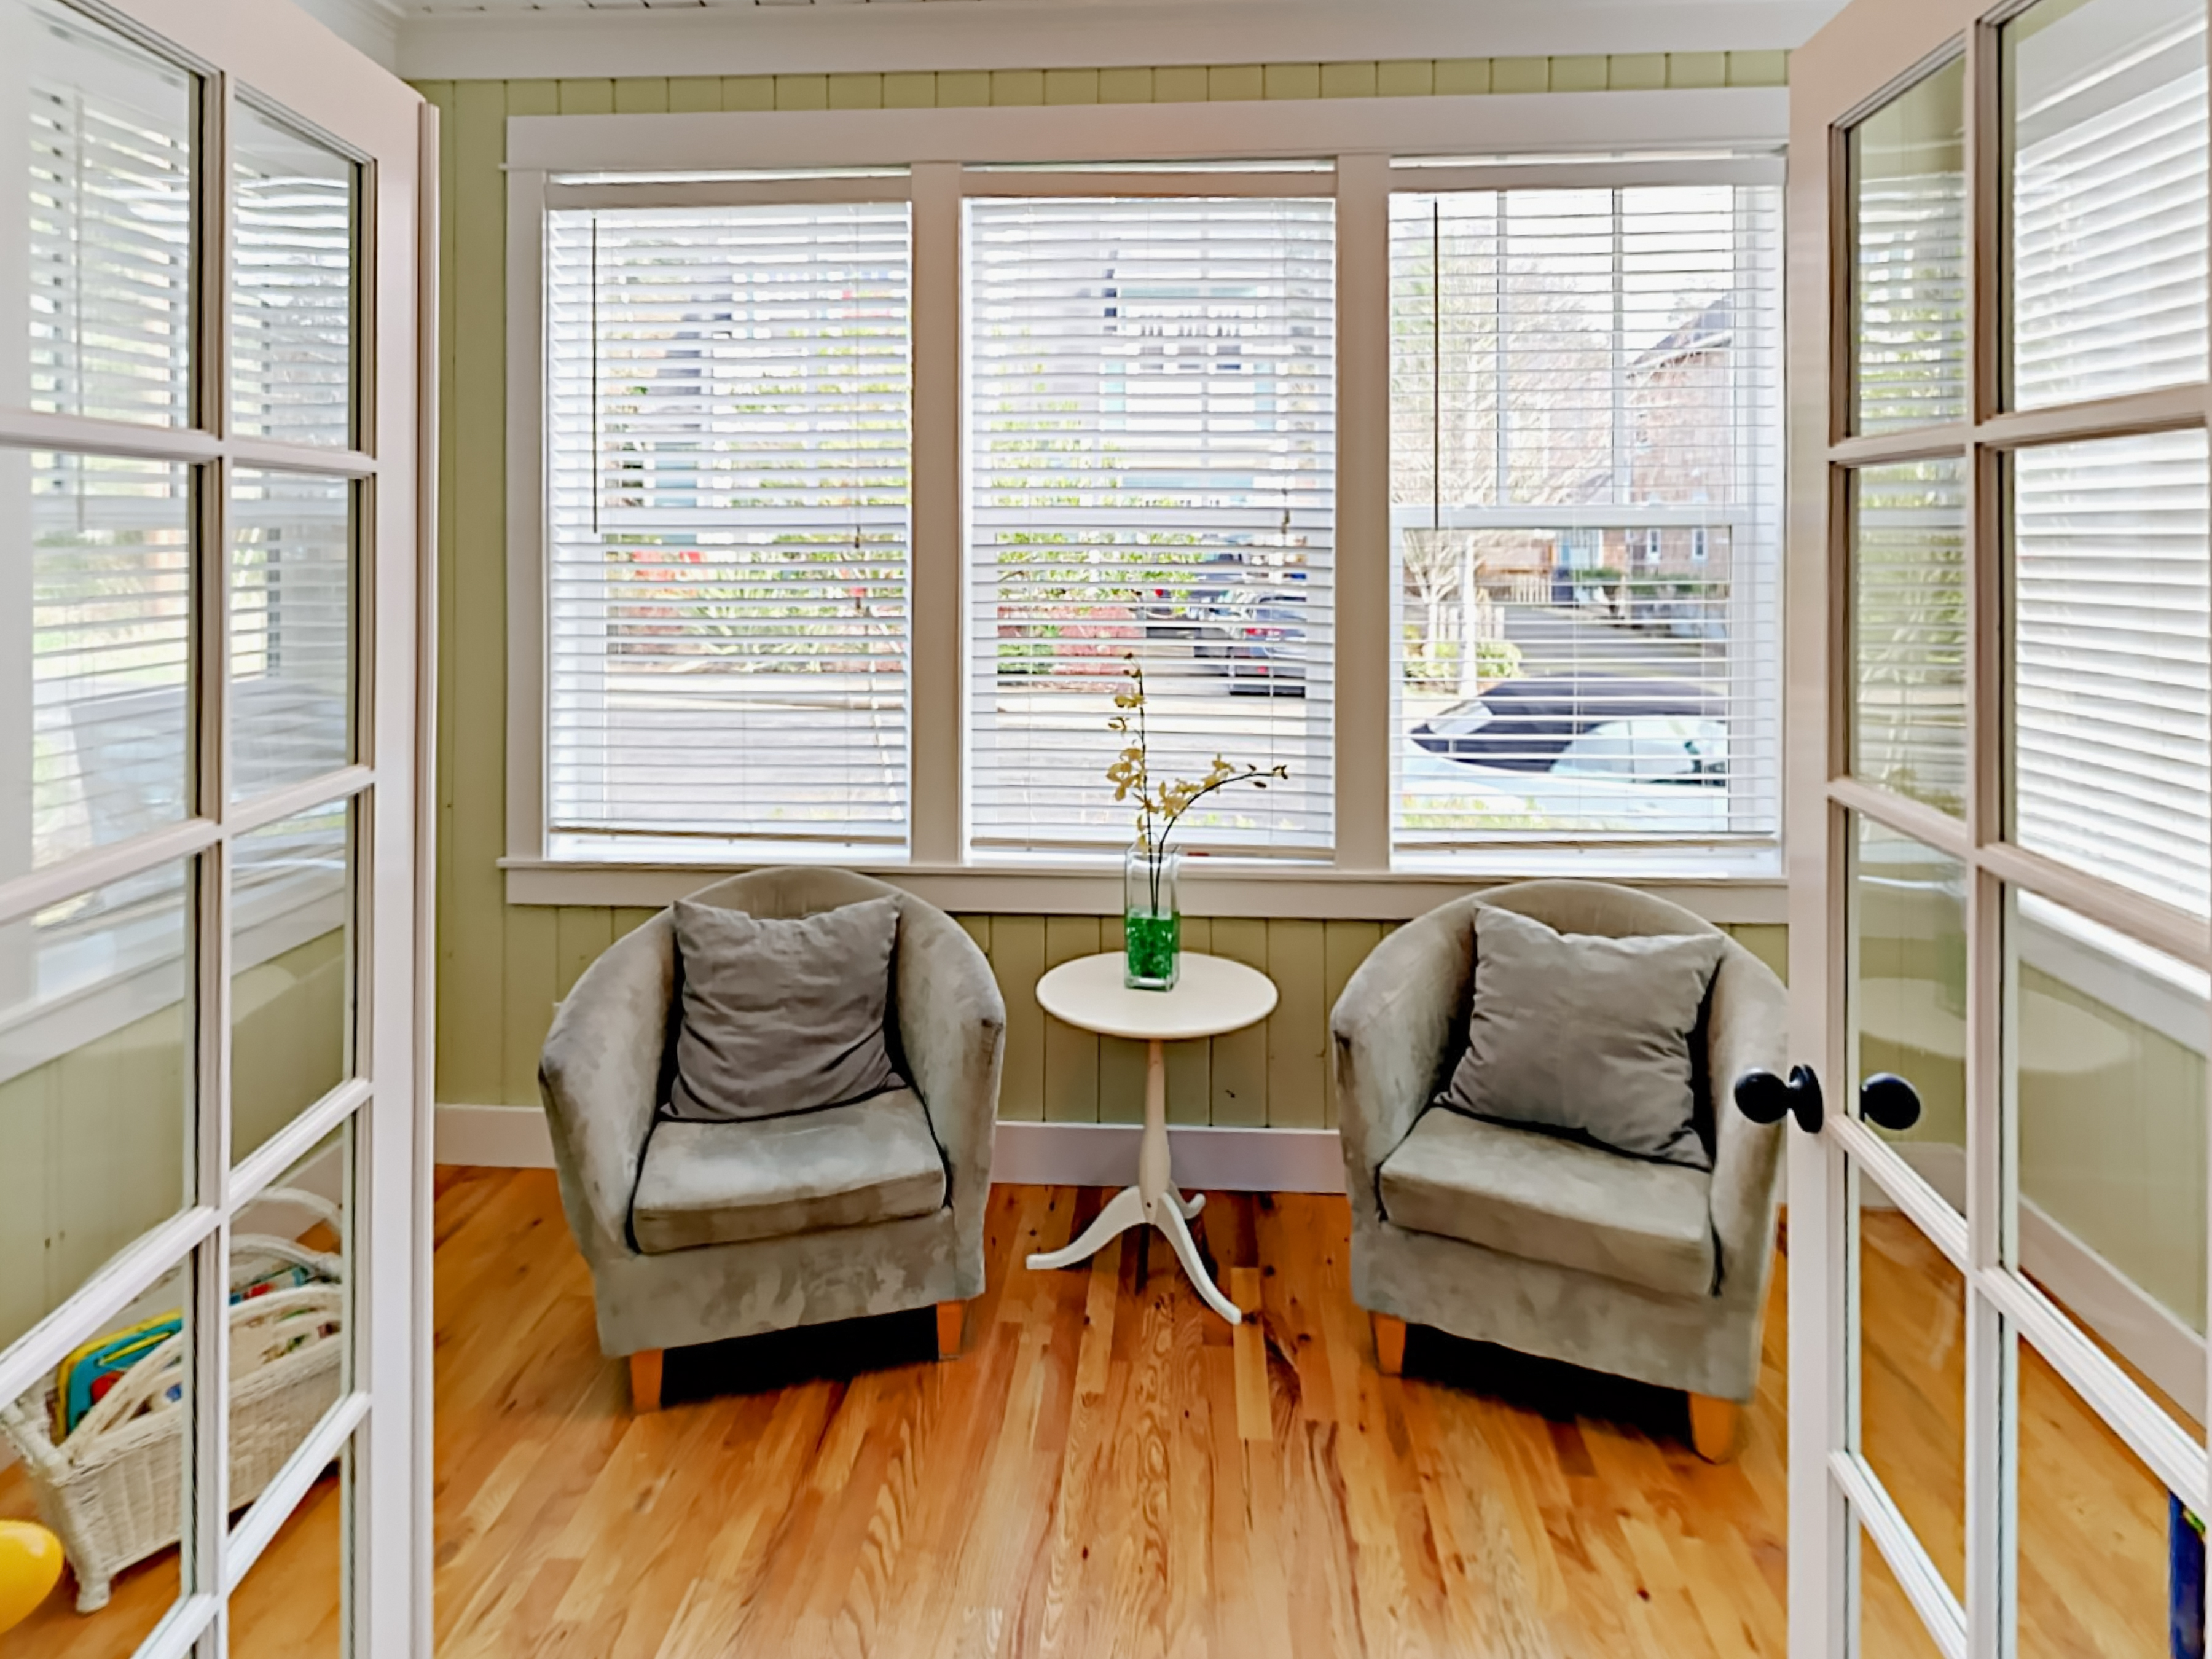 beach oregon booking house kitchen city rentals rental heathergate lincoln or dining